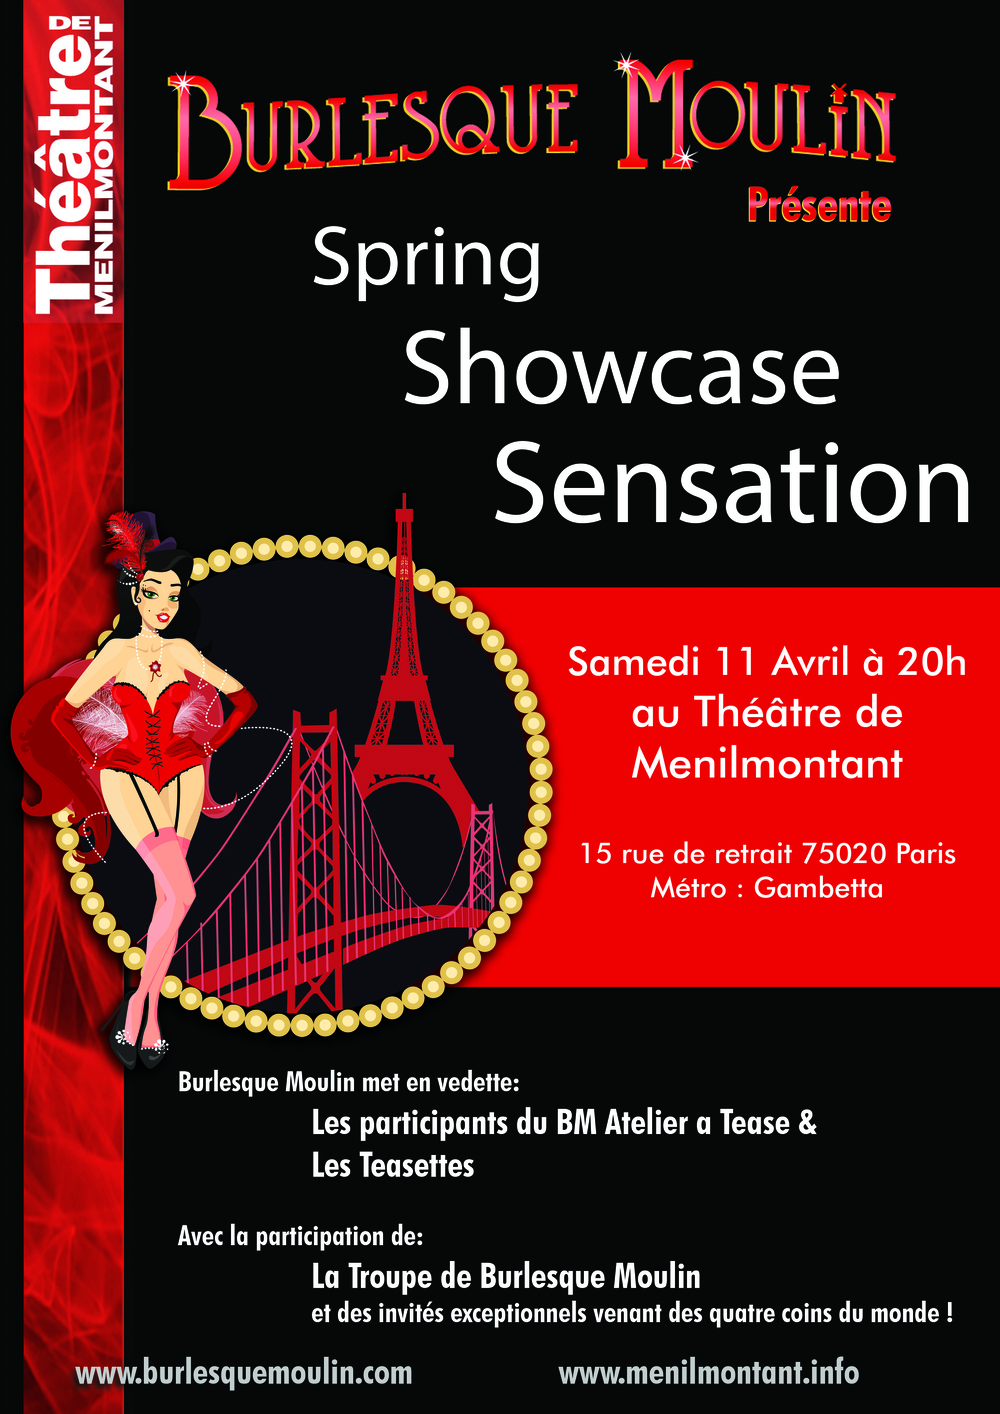 Spring Showcase Sensation 2015 - V2.2.jpg